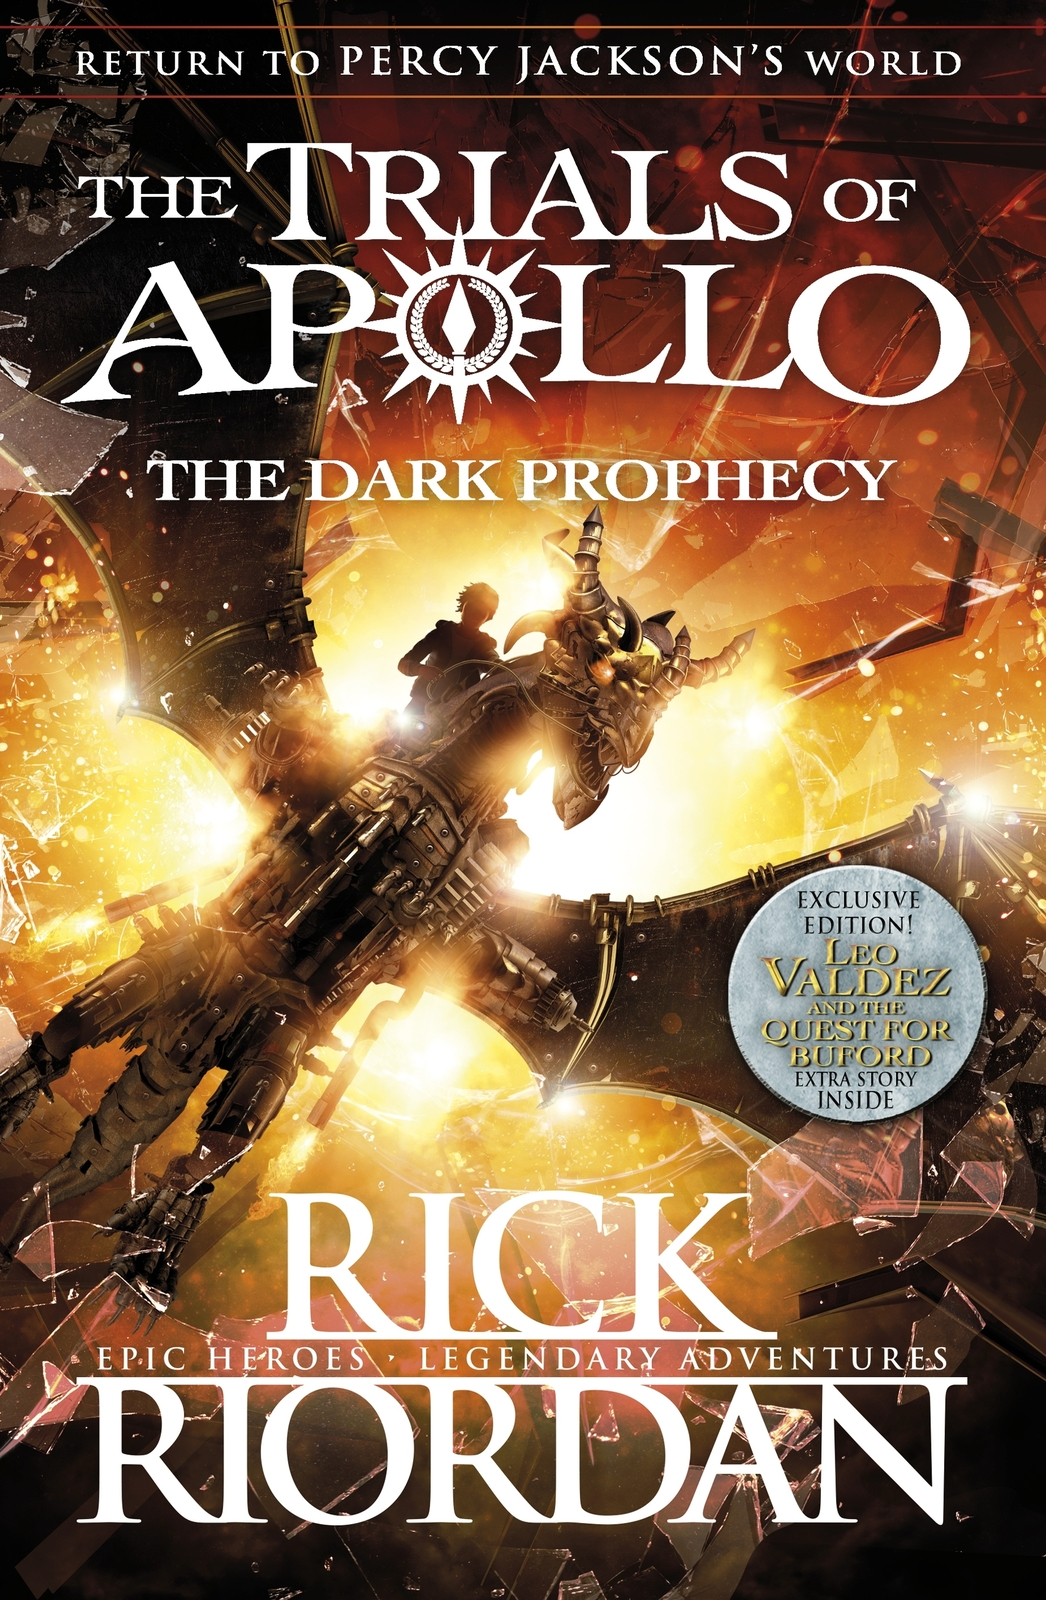 The Dark Prophecy (The Trials of Apollo Book 2) by Rick Riordan image